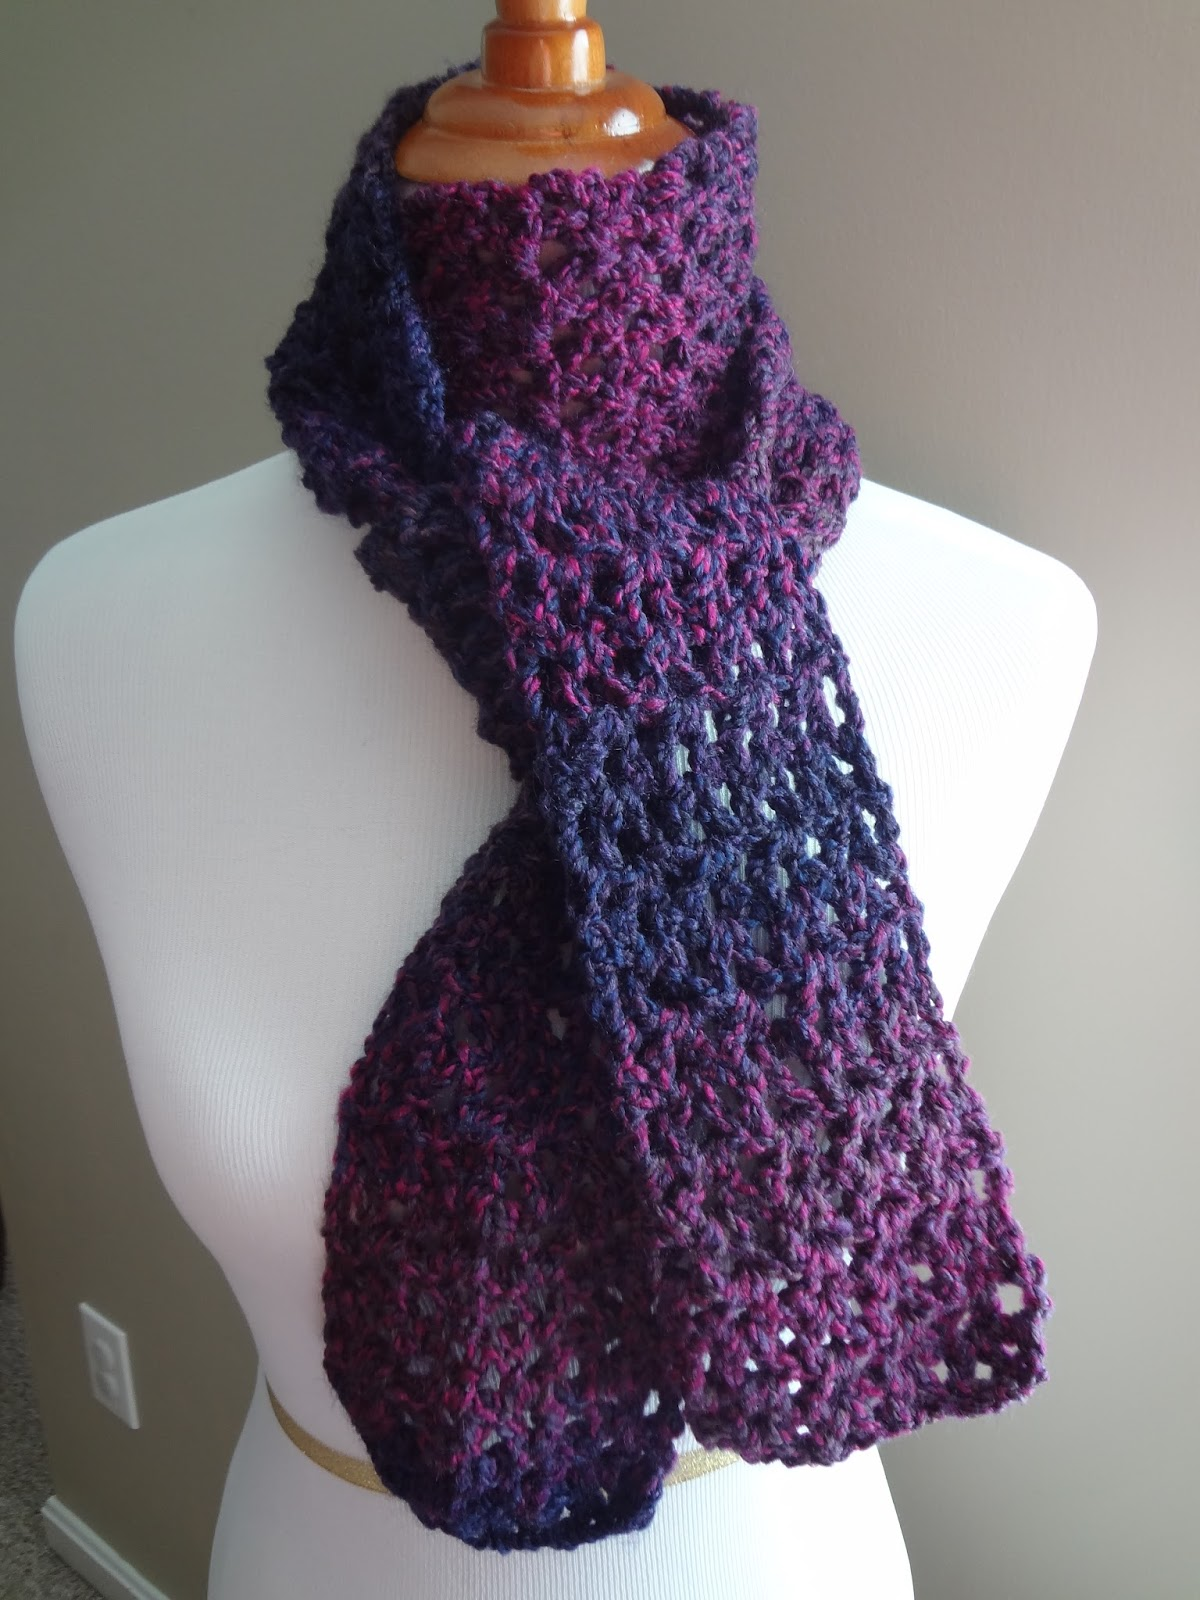 Crochet Stitches Good For Scarves : free crochet patterns for beginners scarves free crochet patterns for ...